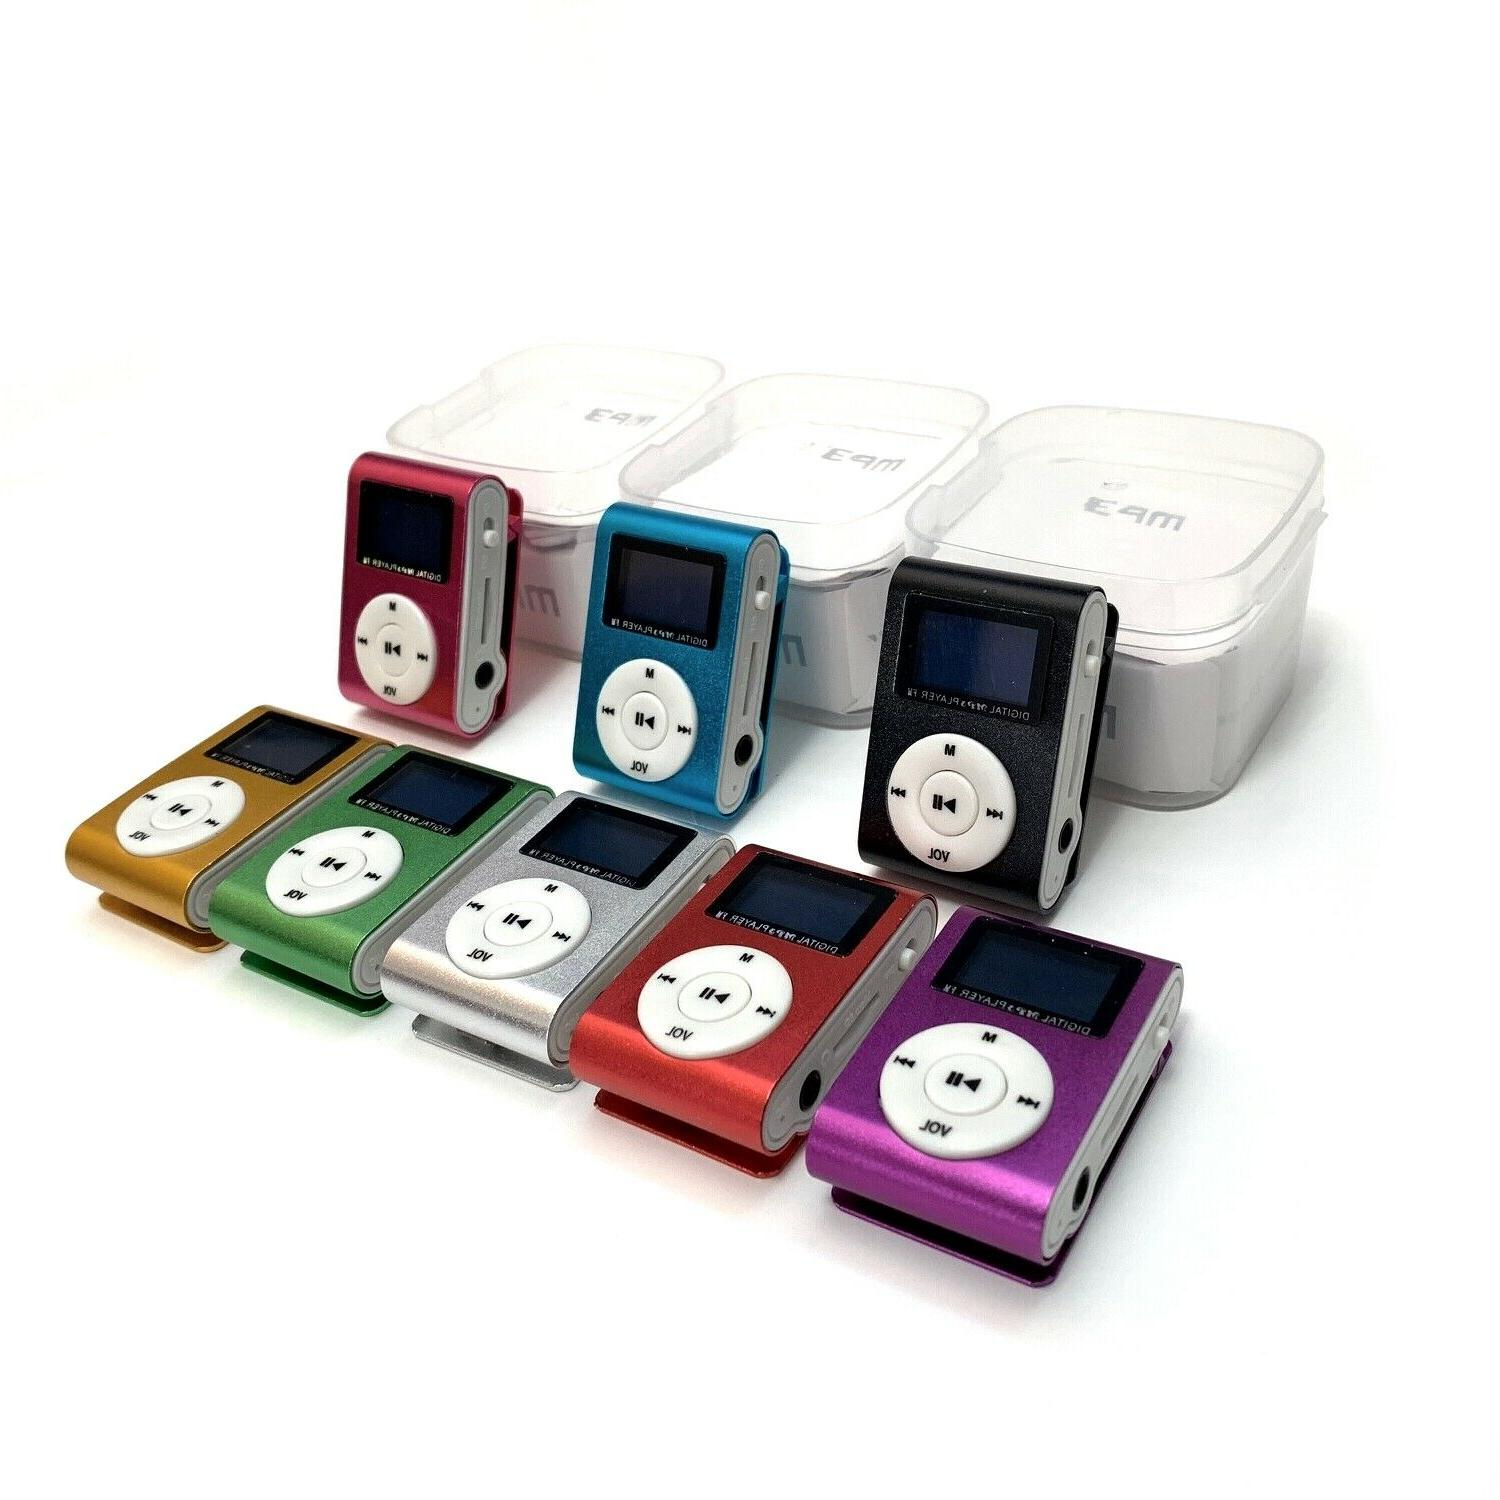 mp3 player with 9 lcd screen display